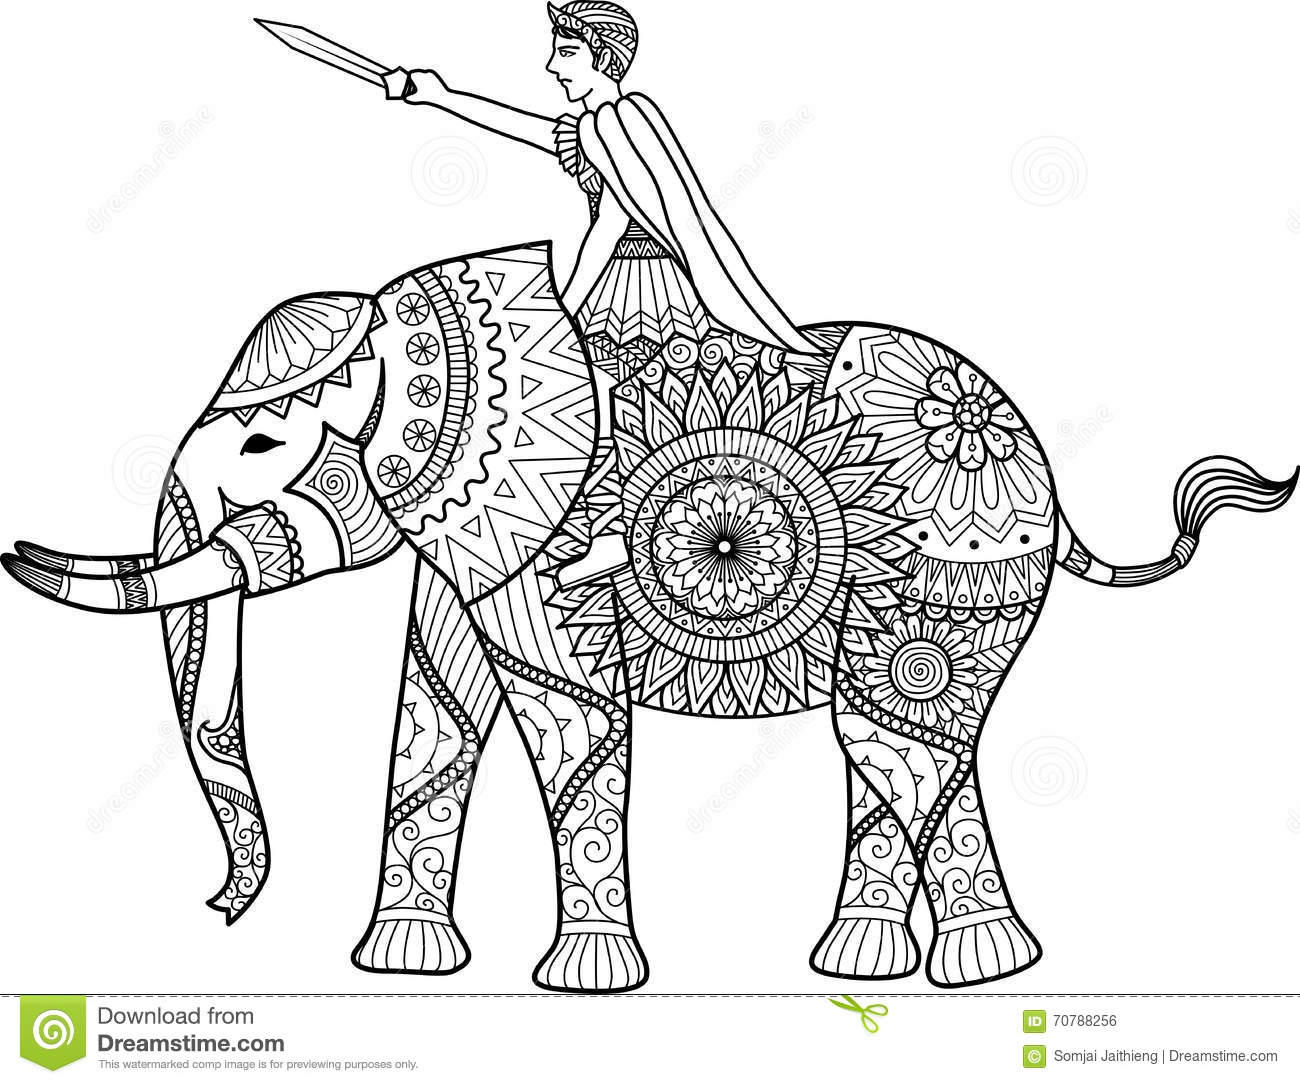 Zentangle Sylized Of Warrior Riding Elephant Coloring Book For Adult